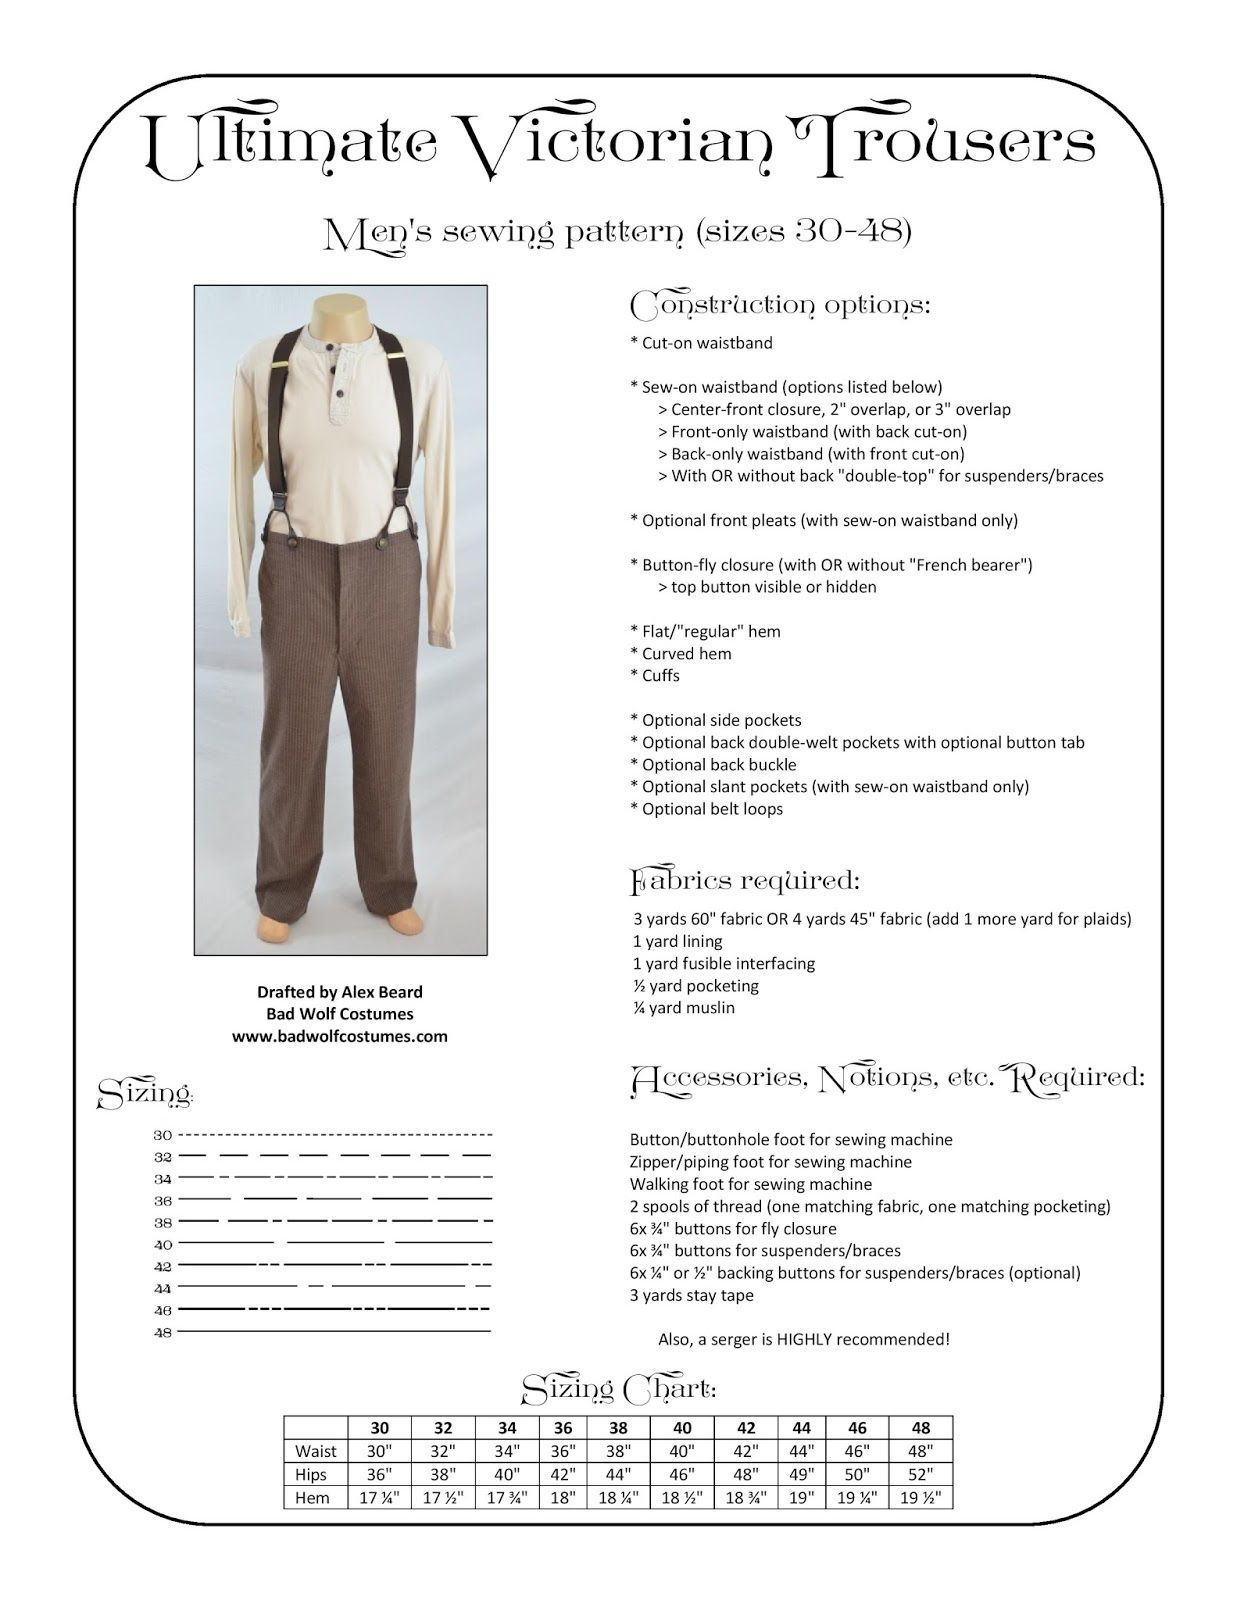 Bad wolf costumes ultimate victorian trousers sewing pattern bad wolf costumes ultimate victorian trousers sewing pattern jeuxipadfo Image collections